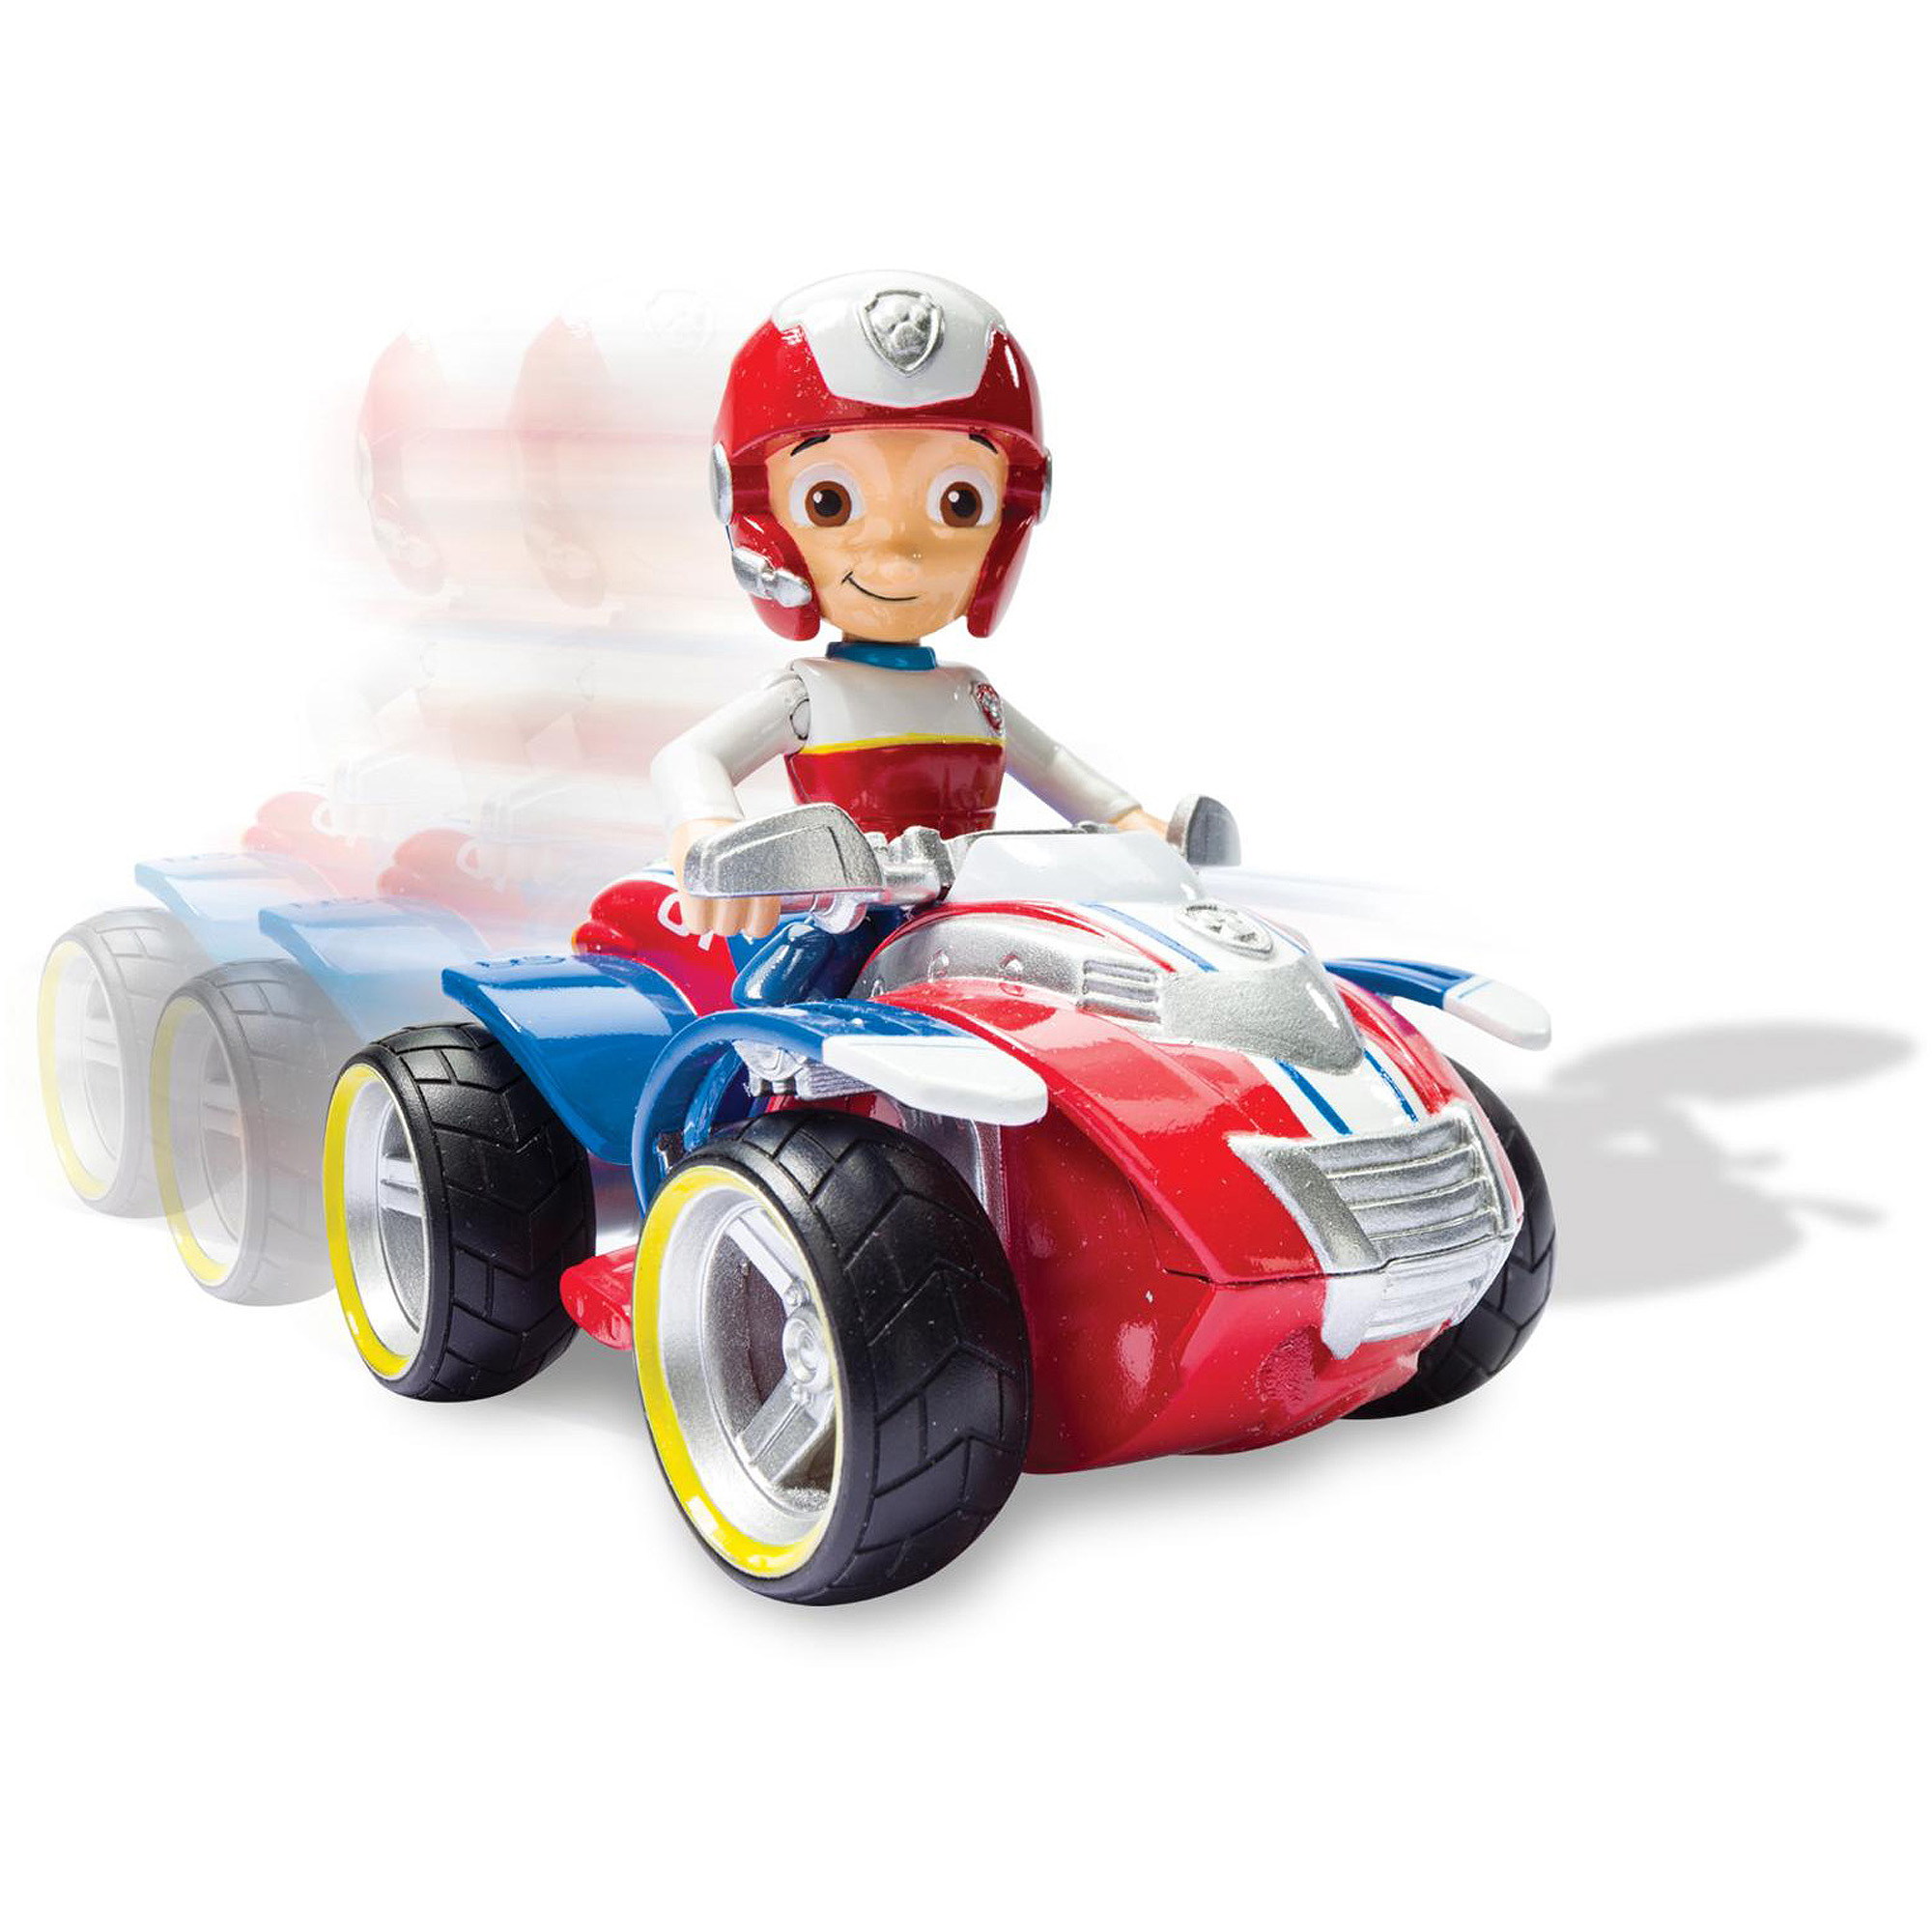 Nickelodeon Paw Patrol - Ryder's Rescue ATV, Vechicle and Figure